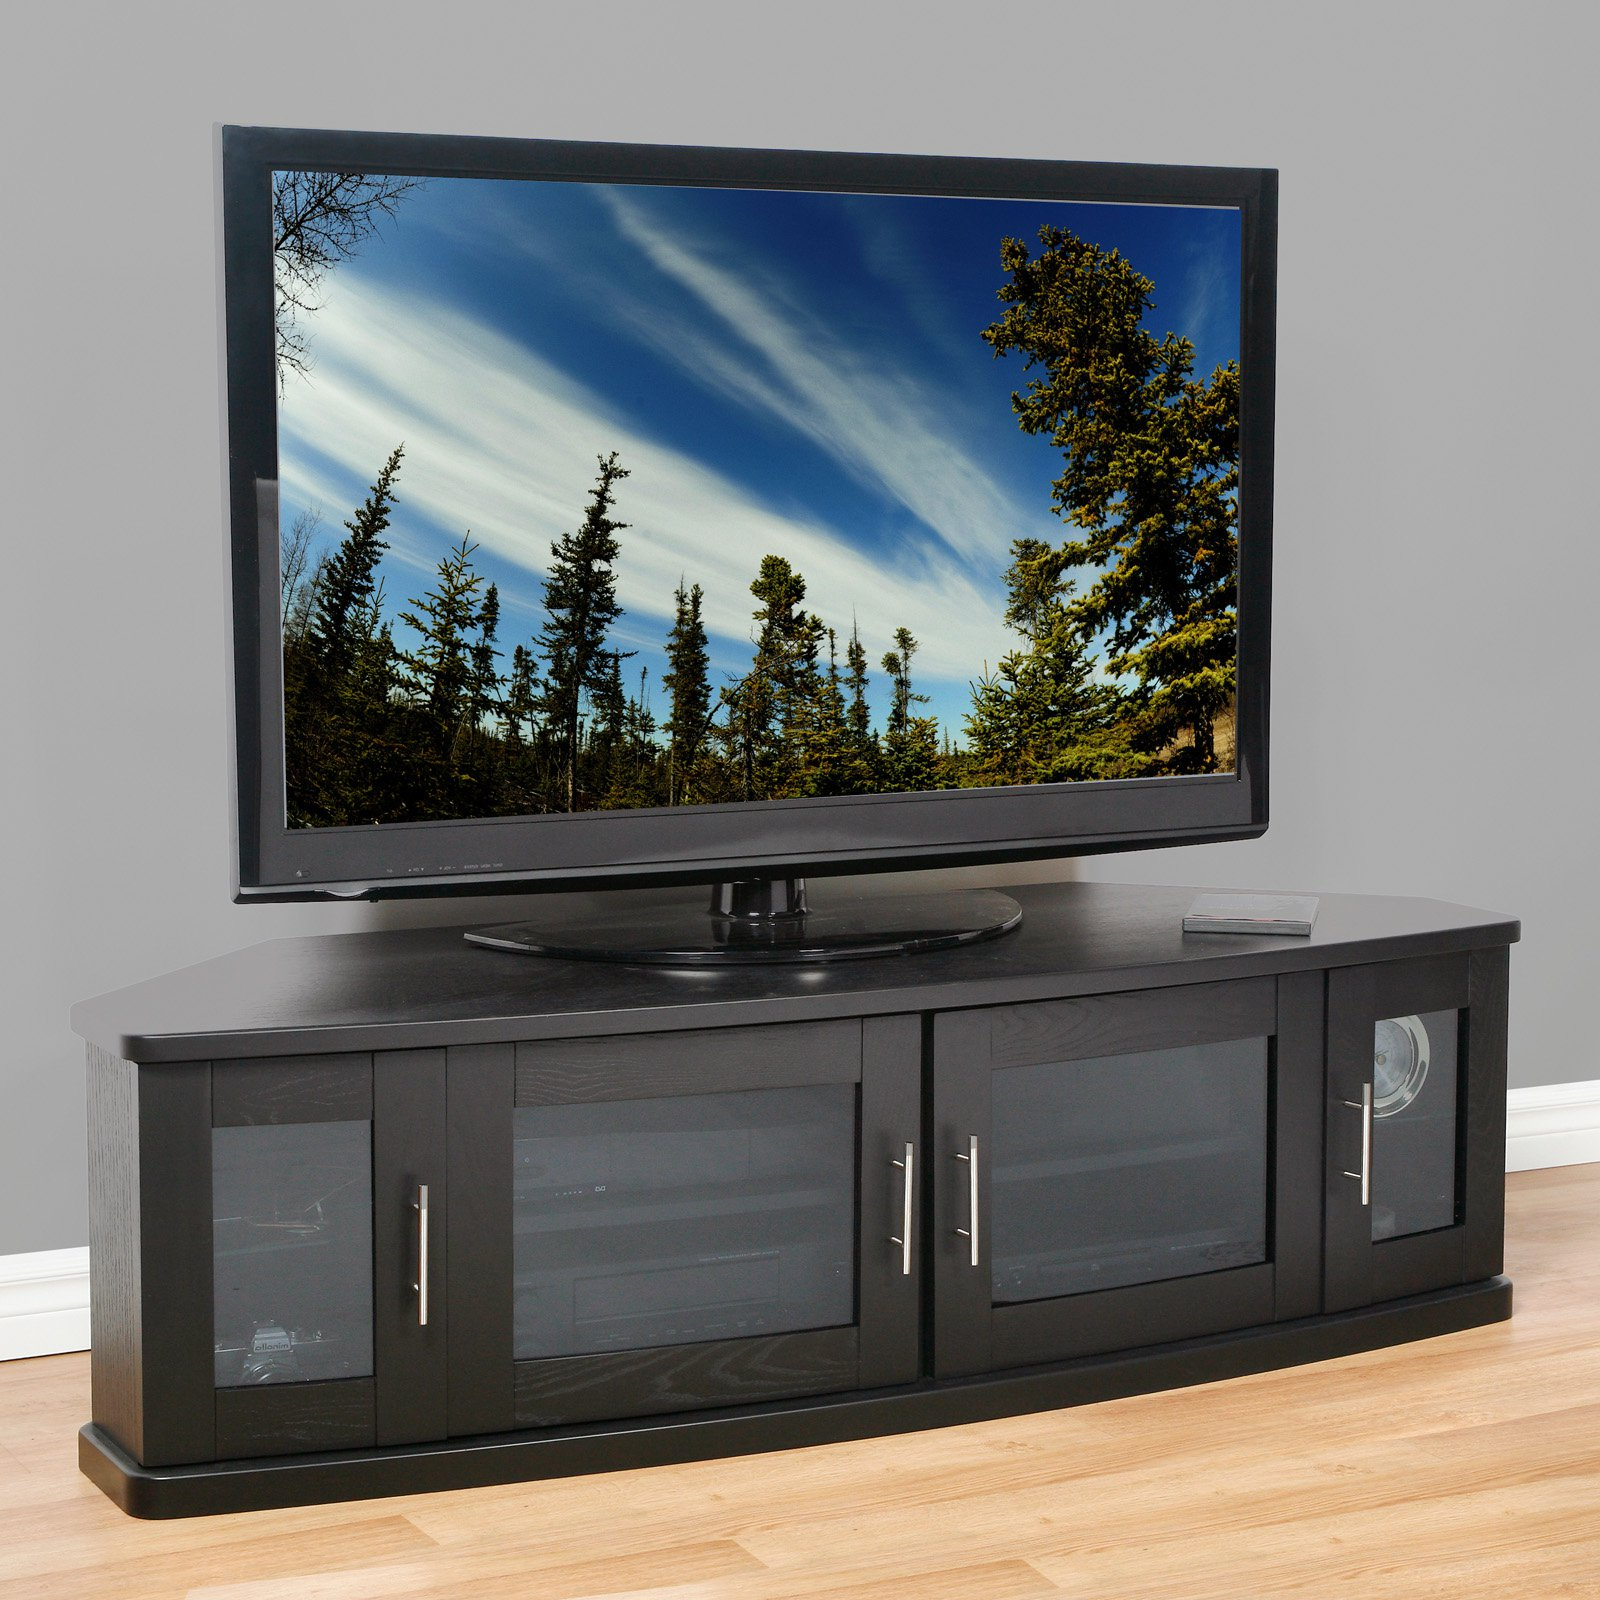 Plateau Newport 62 Inch Corner Tv Stand In Black – Walmart With Regard To Well Liked Wooden Tv Stands With Glass Doors (View 12 of 20)